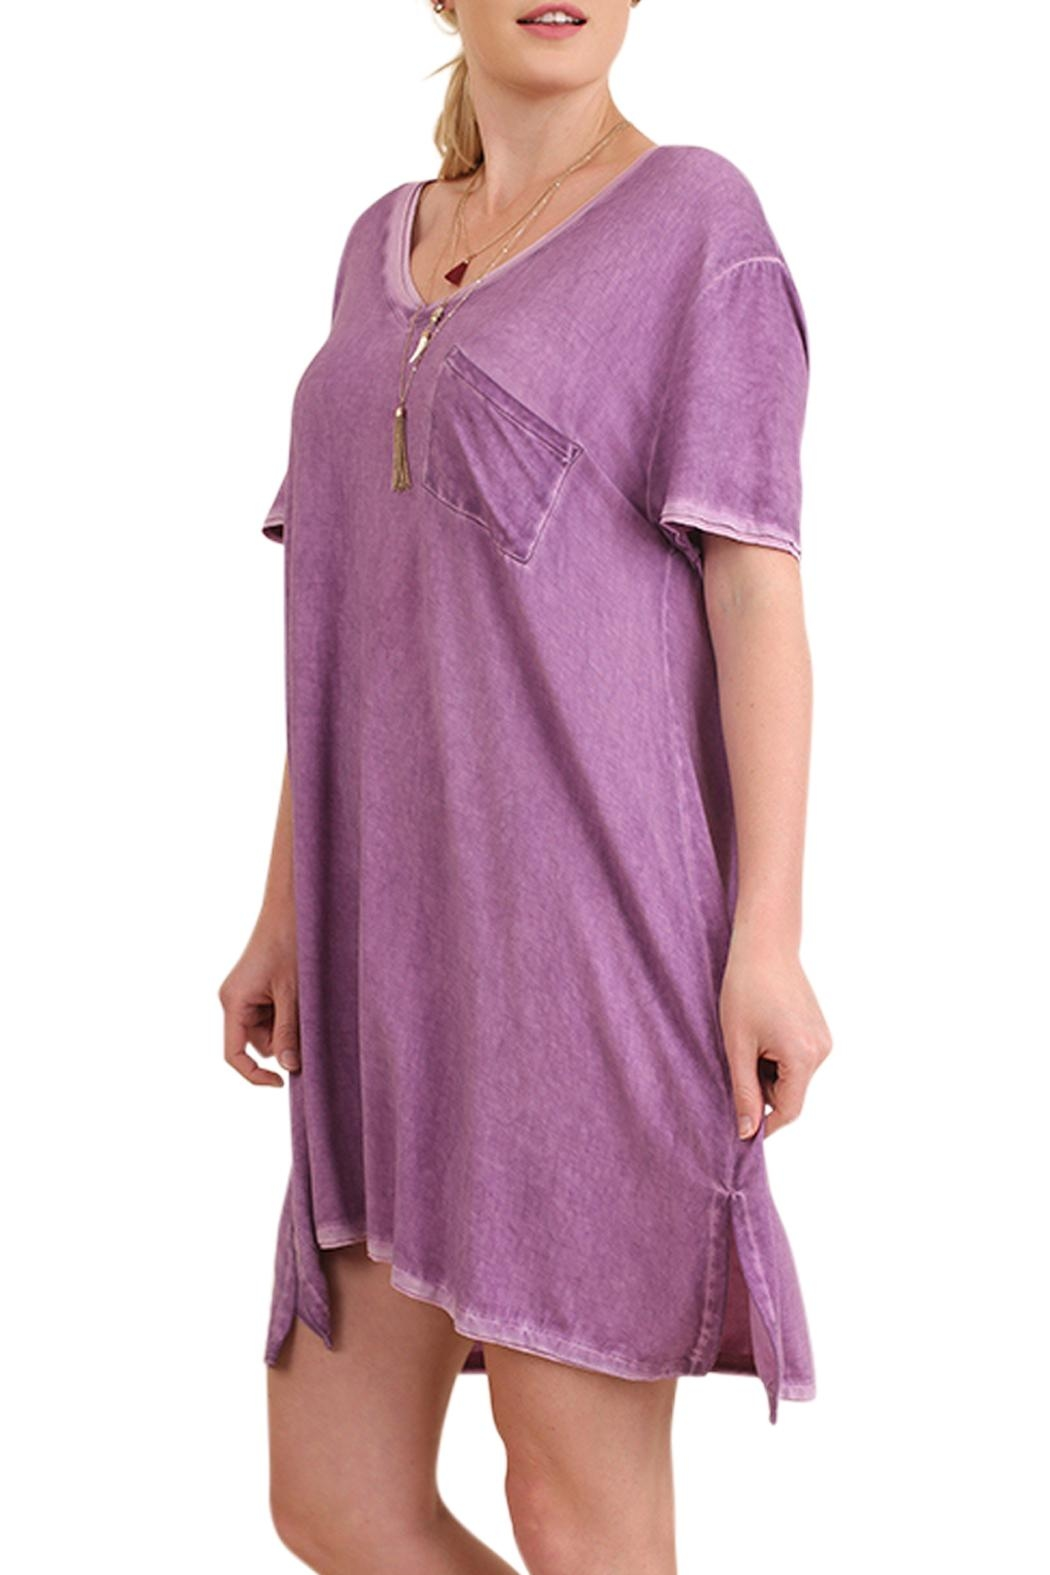 f437f3269798 Umgee USA Pocket T-Shirt Dress from Missouri by The Sparkly Pig ...